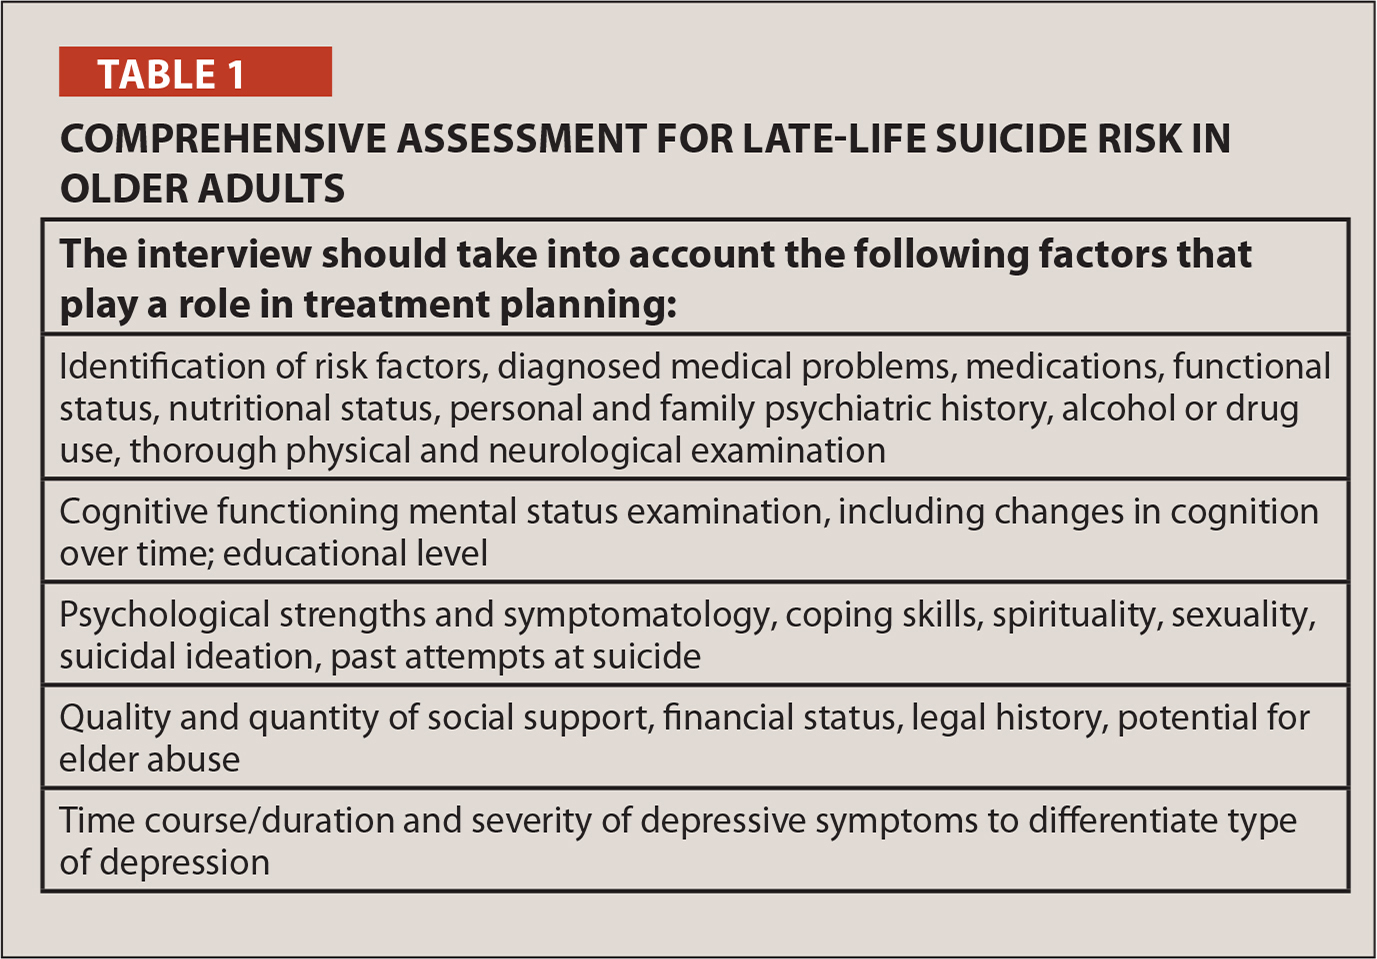 Comprehensive Assessment for Late-Life Suicide Risk in Older Adults